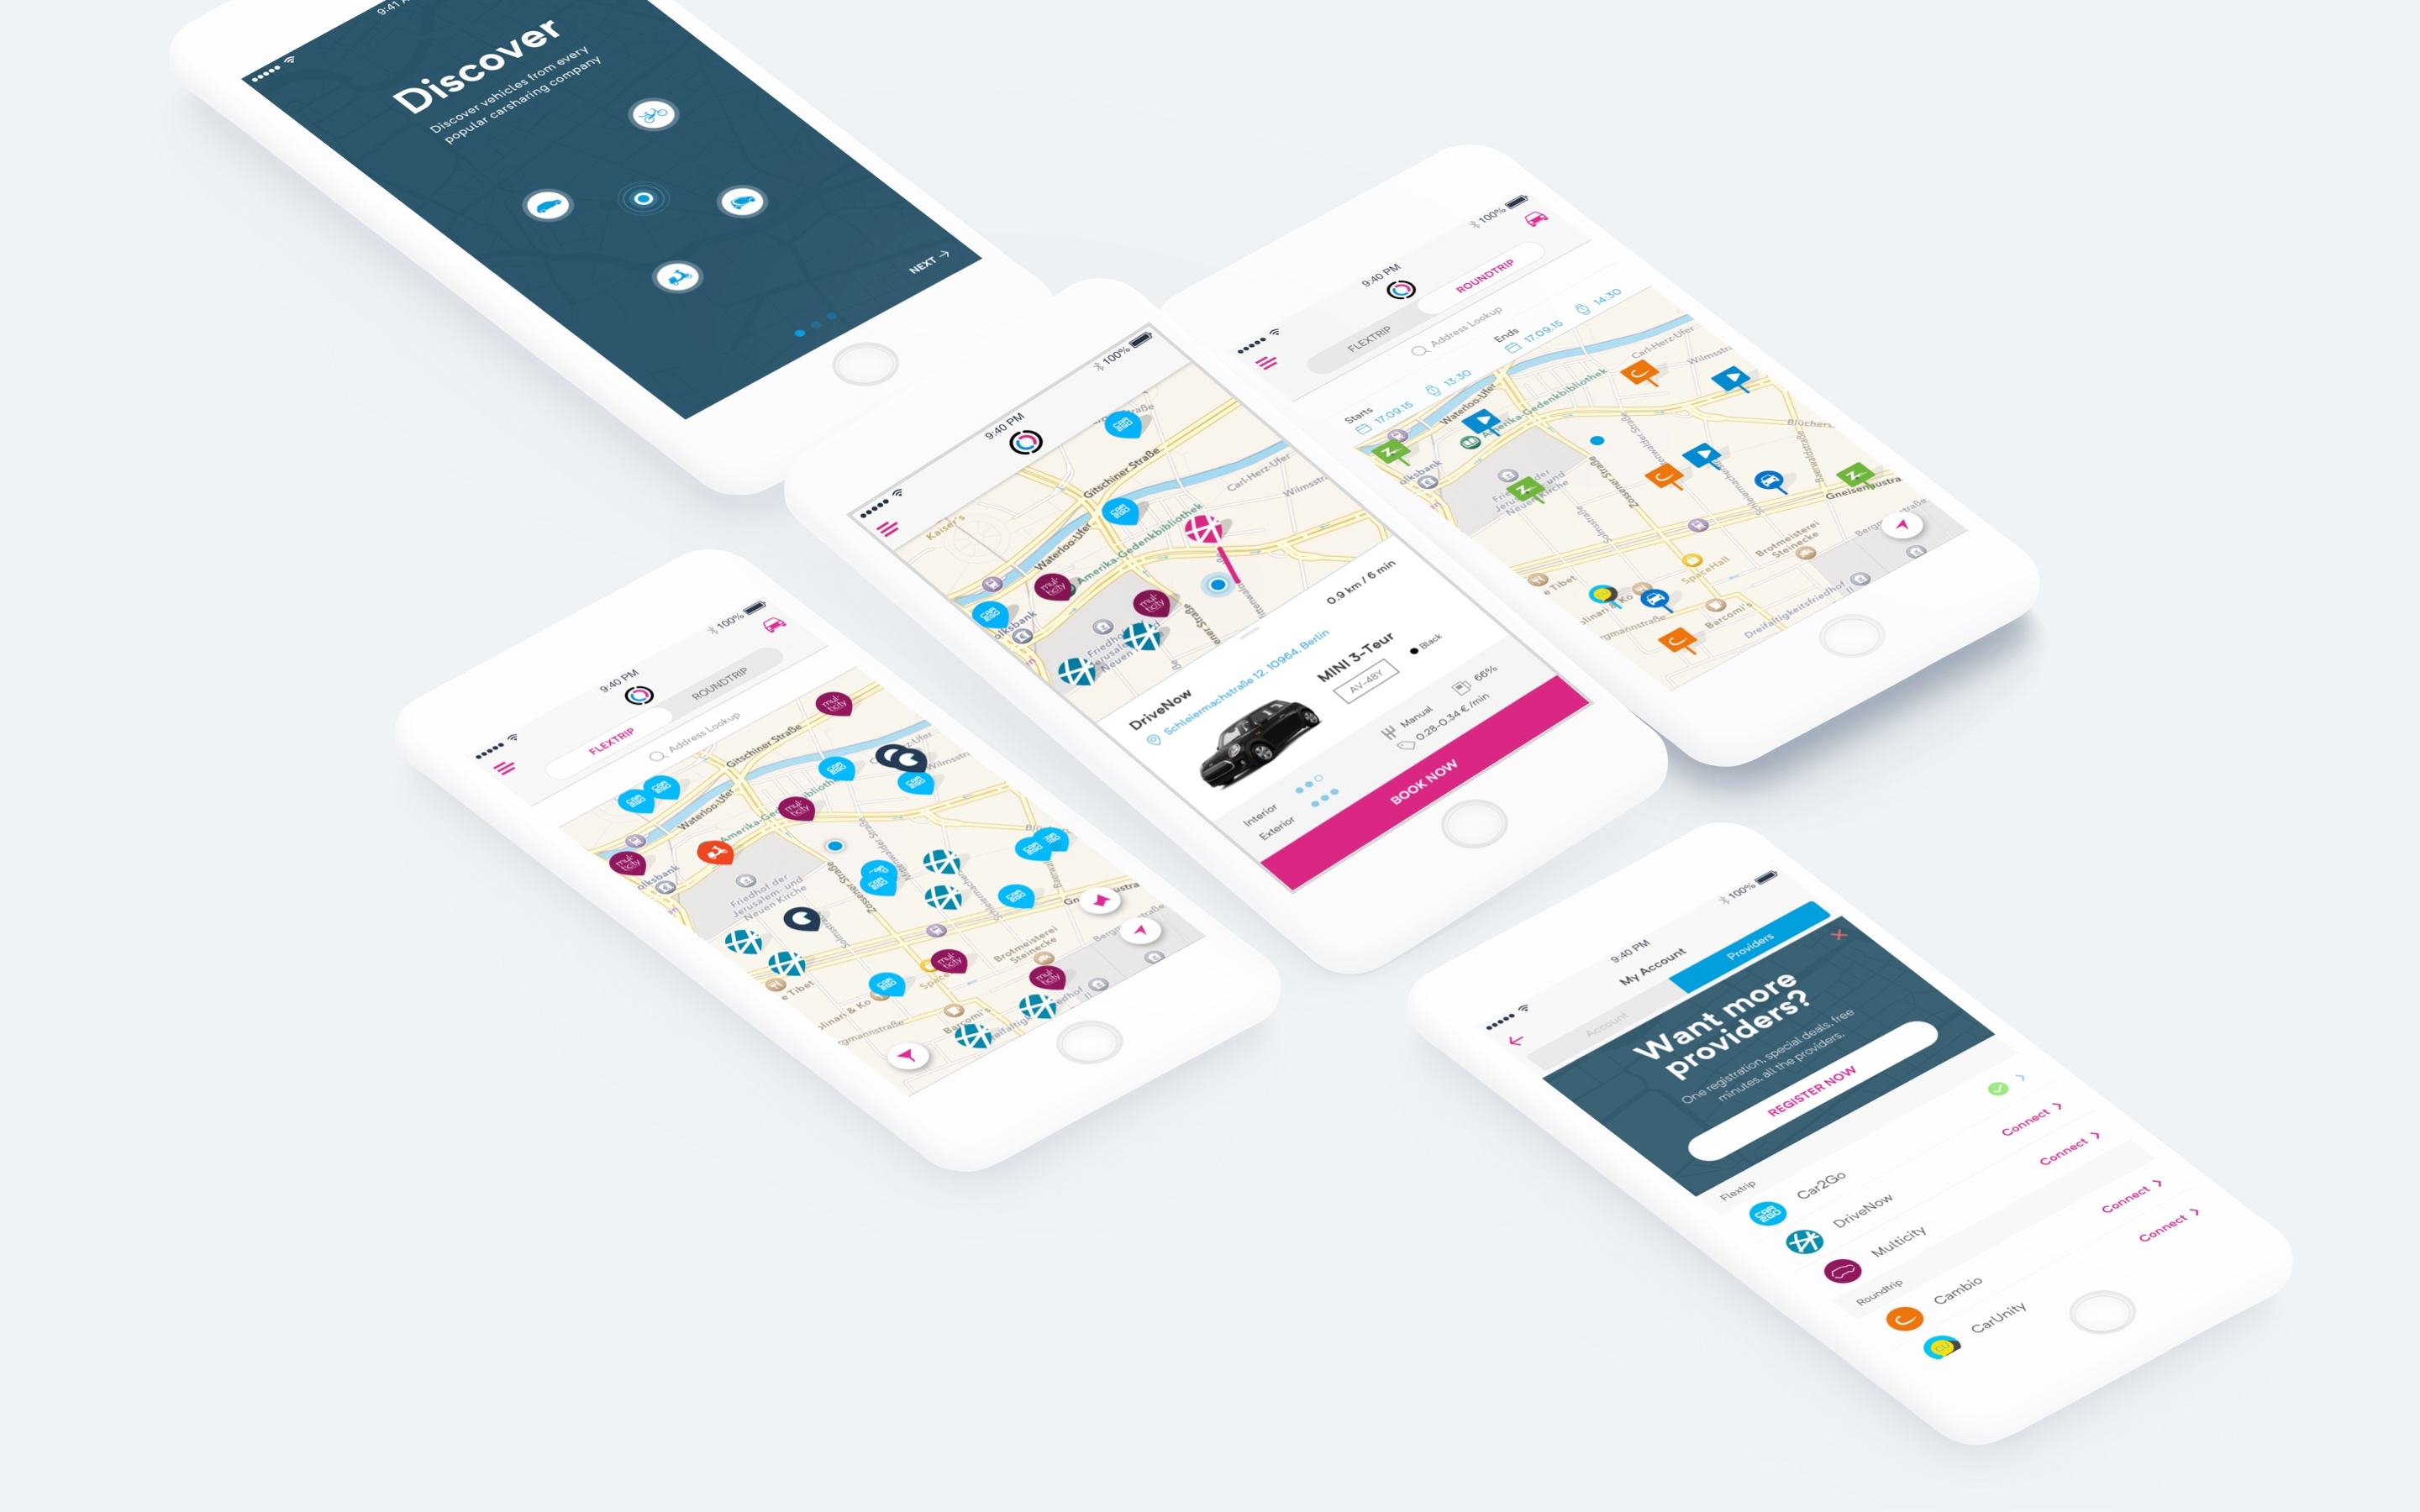 Free2Move design by Manu Franco-UX designer